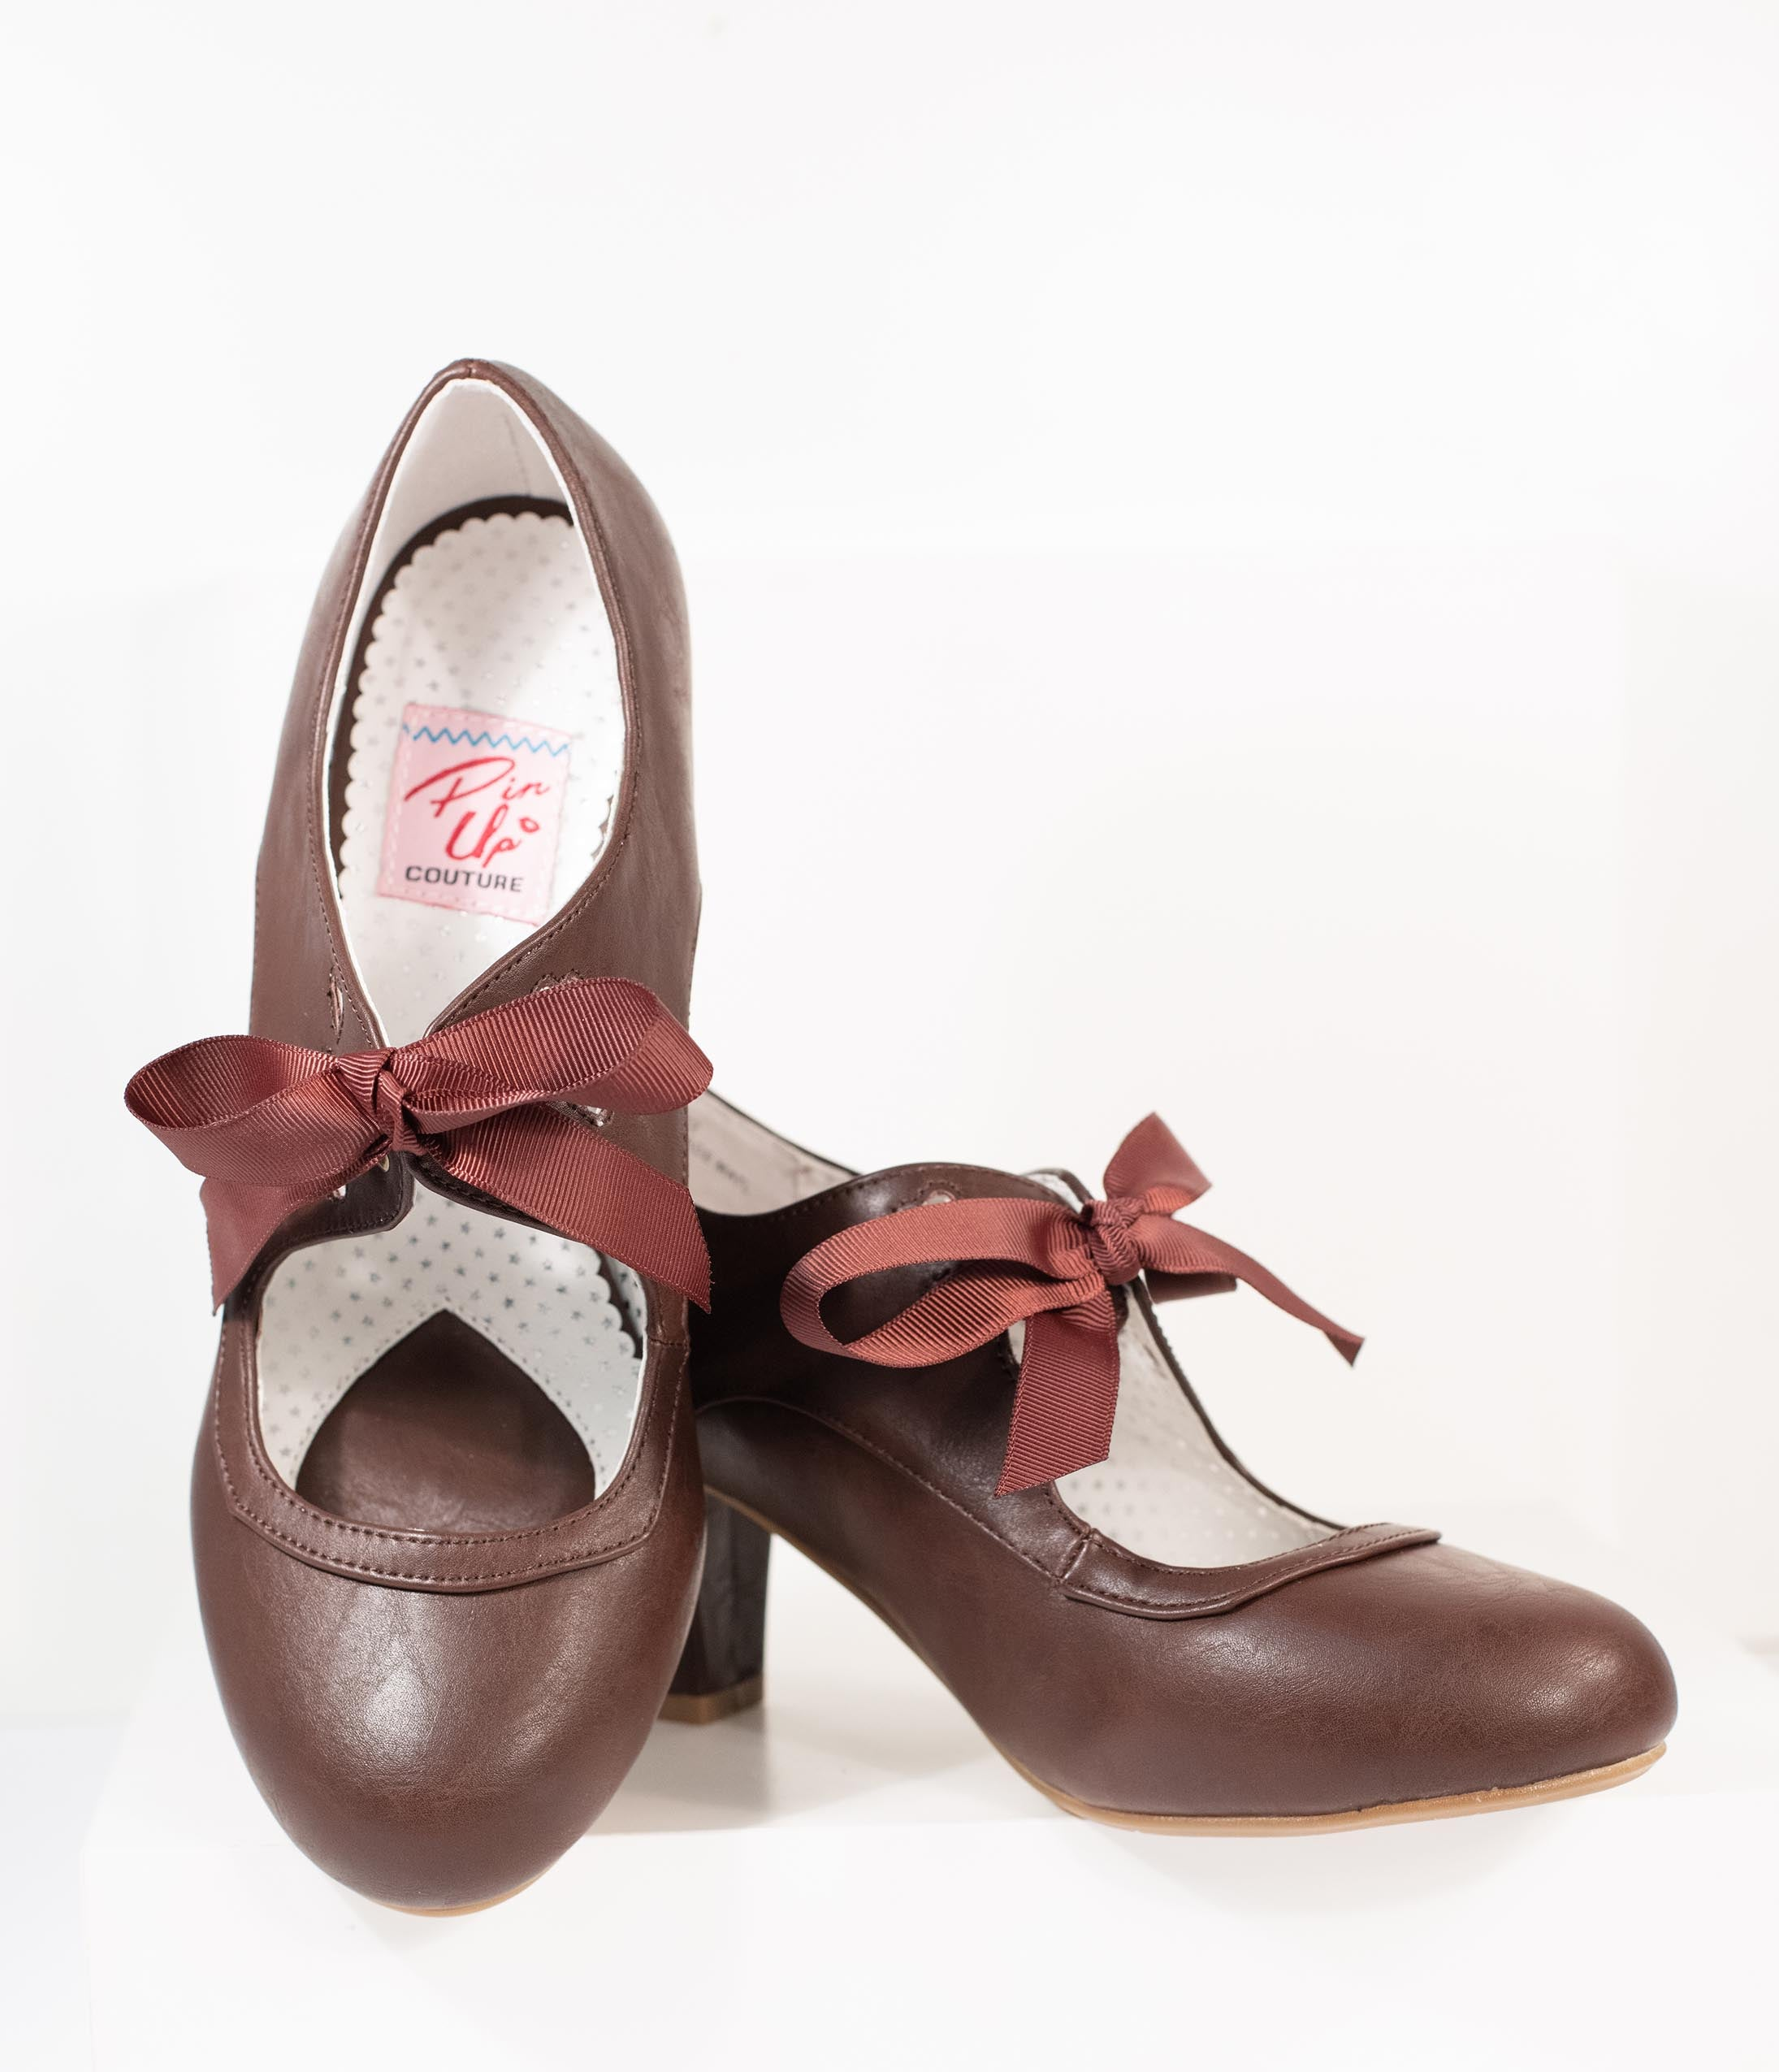 1920s Shoes for UK – T-Bar, Oxfords, Flats Vintage Style Dark Brown Leatherette Wiggle Bow Heels $66.00 AT vintagedancer.com